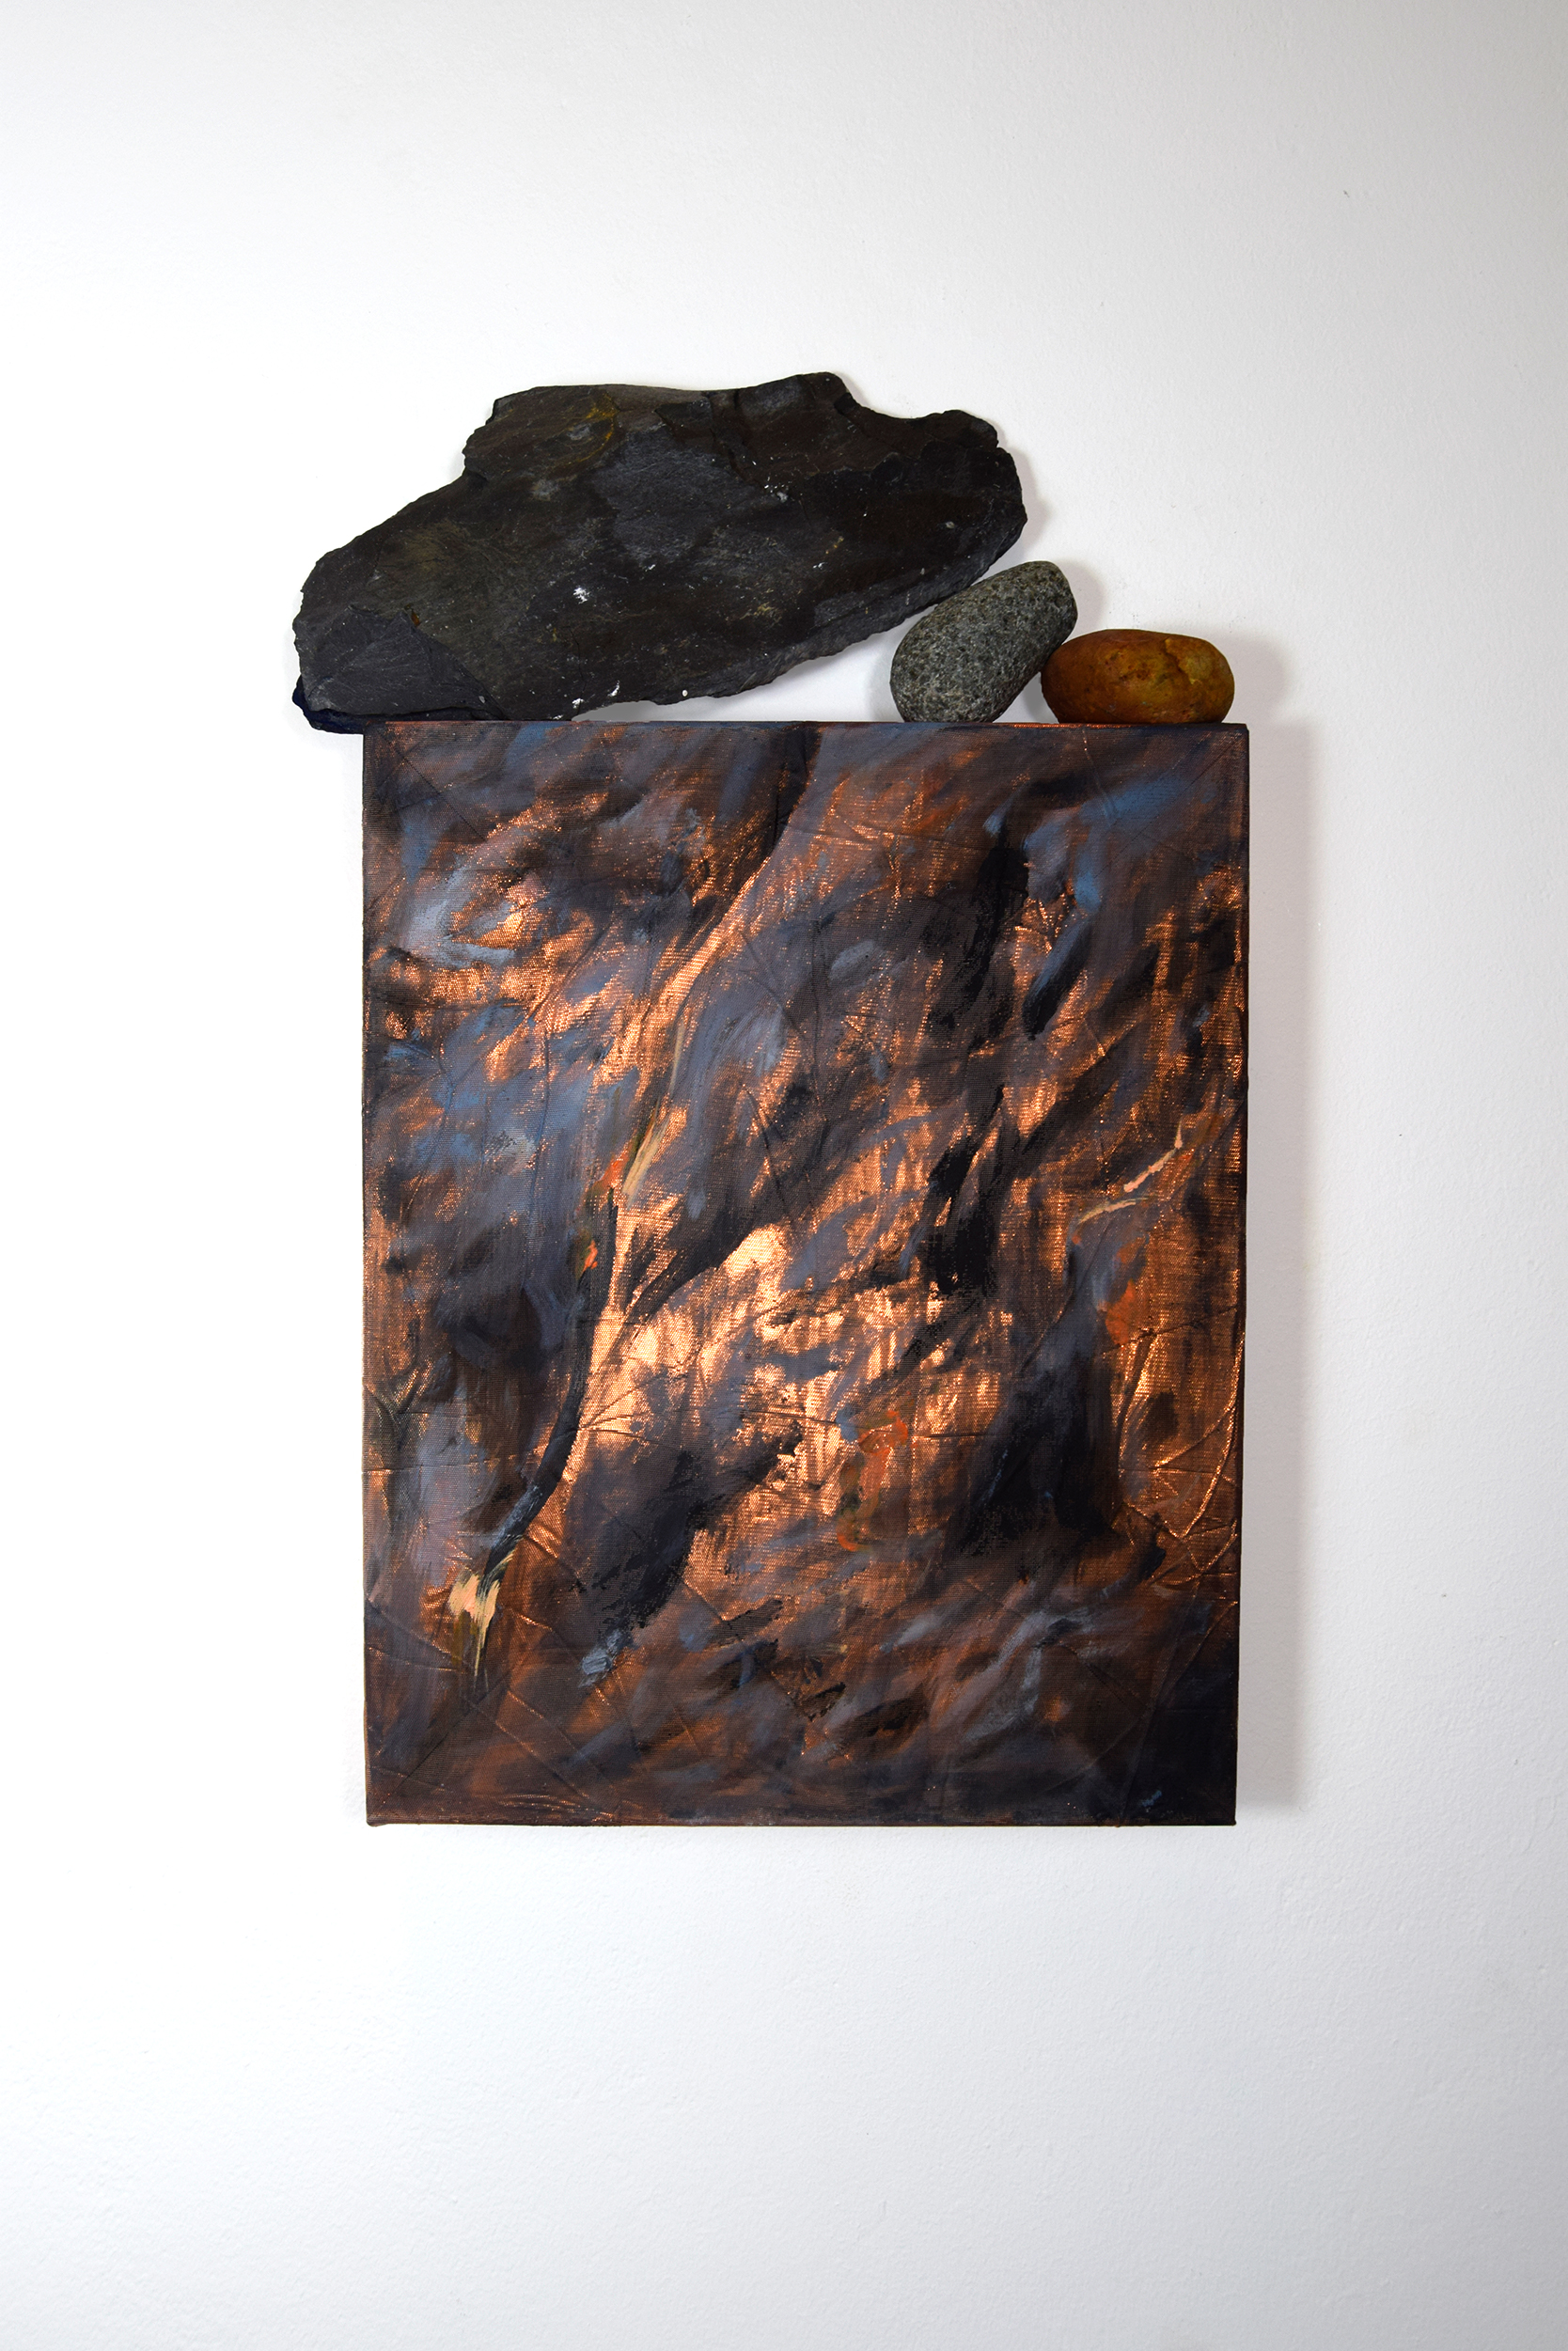 Cliff face painting on shiny orange fabric with stones balanced on top